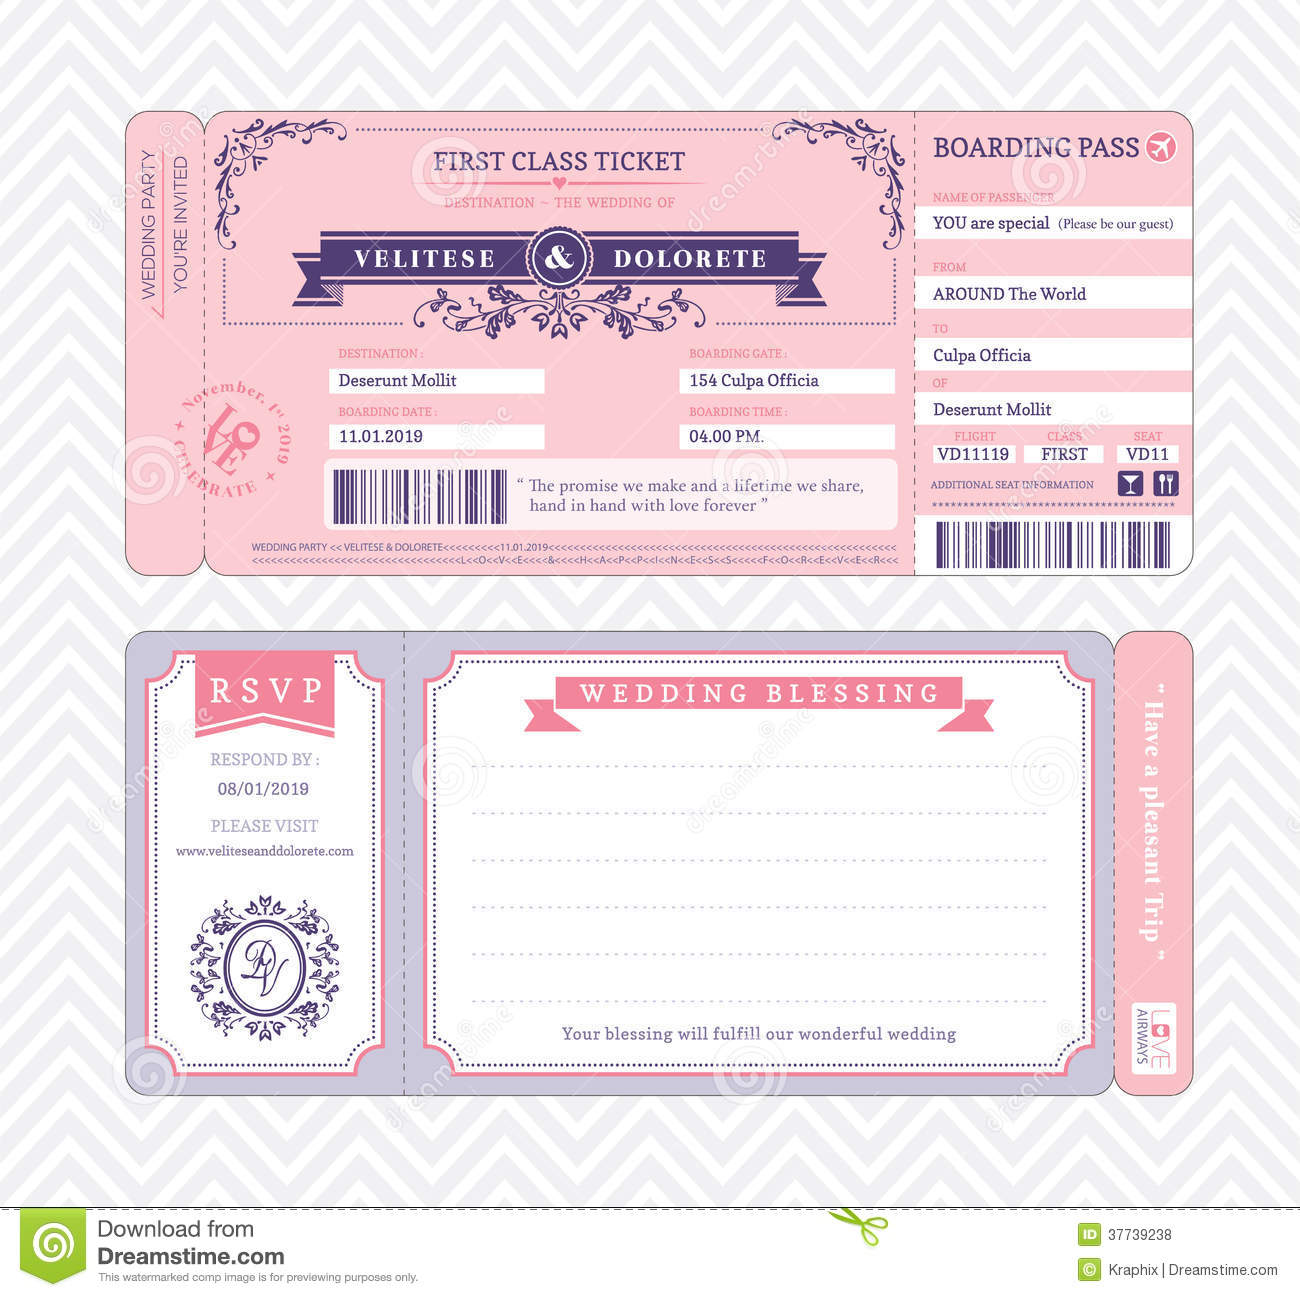 Boarding Pass Wedding Invitation Template  Invitation Free Download